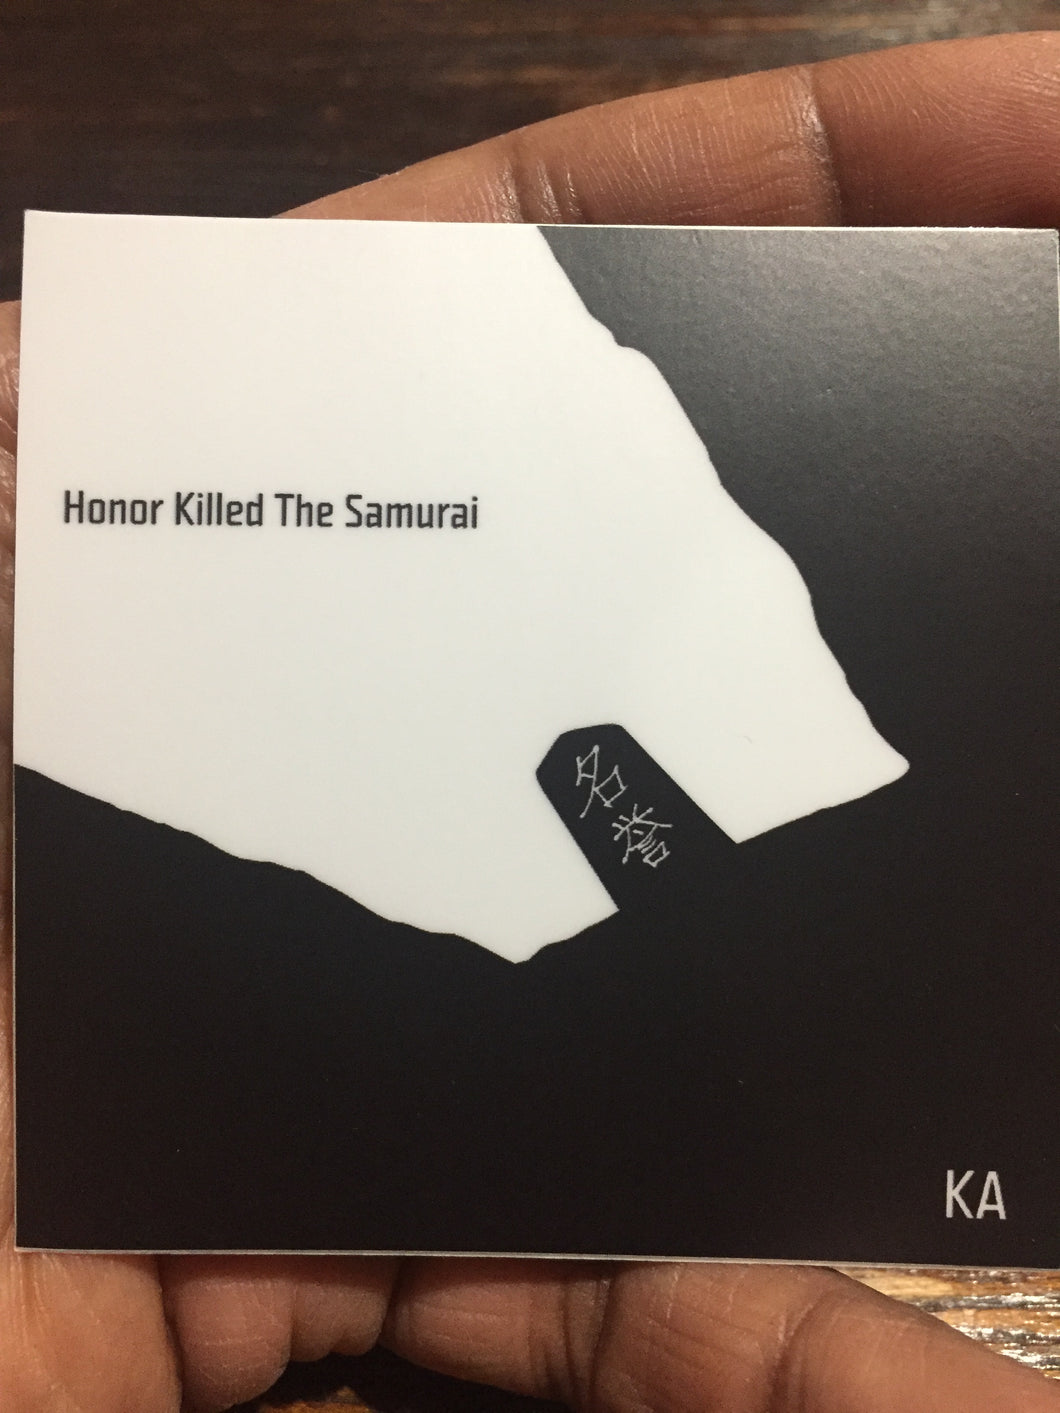 Honor Killed The Samurai Sticker